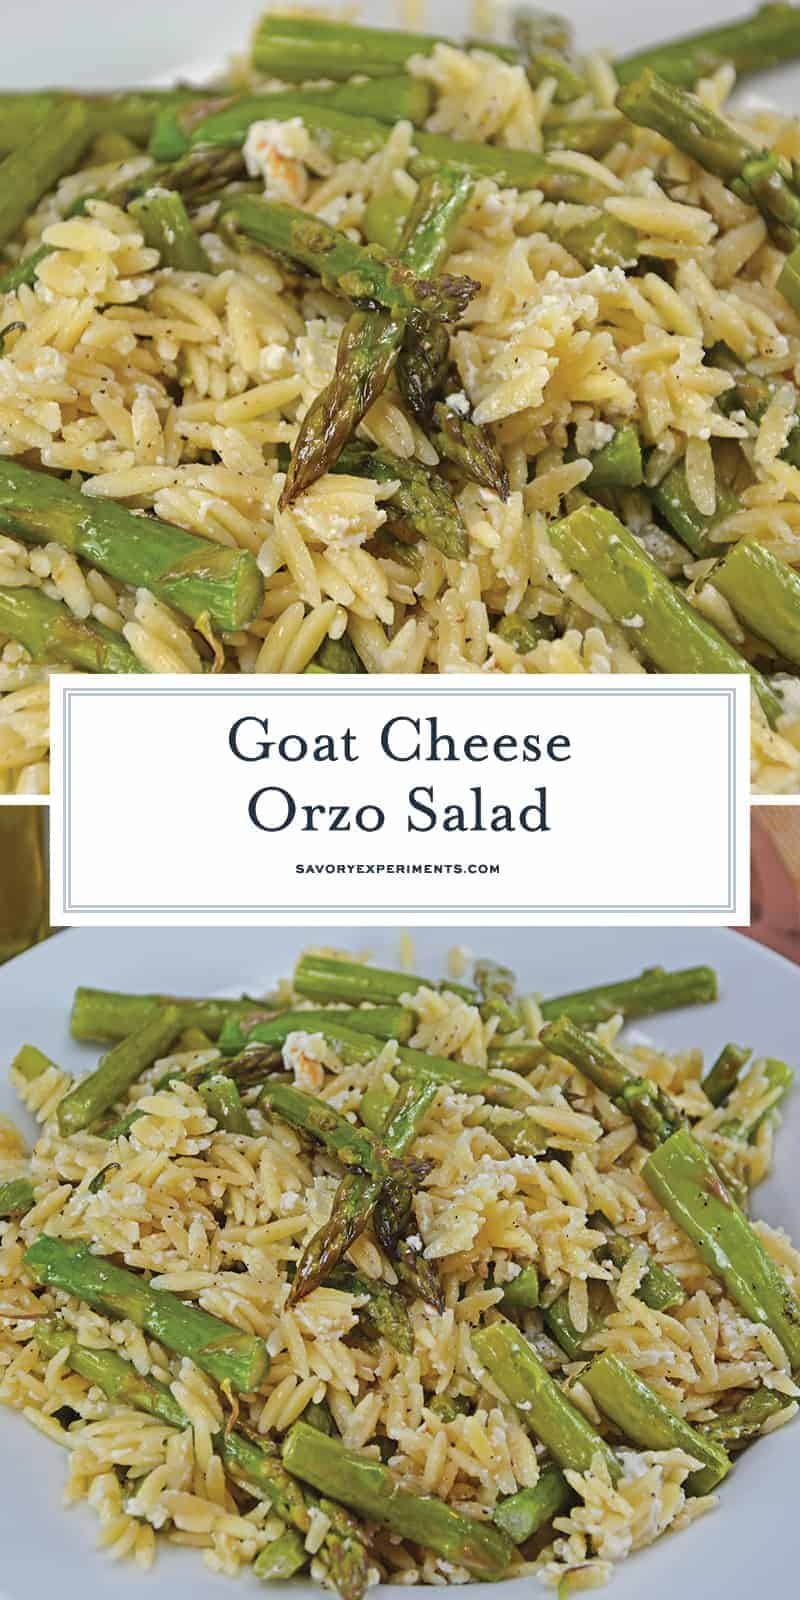 Goat Cheese Orzo Salad is a quick side dish recipe that uses quick cooking pasta with creamy goat cheese and roasted asparagus spears. #orzosalad #goatcheese www.savoryexperiments.com